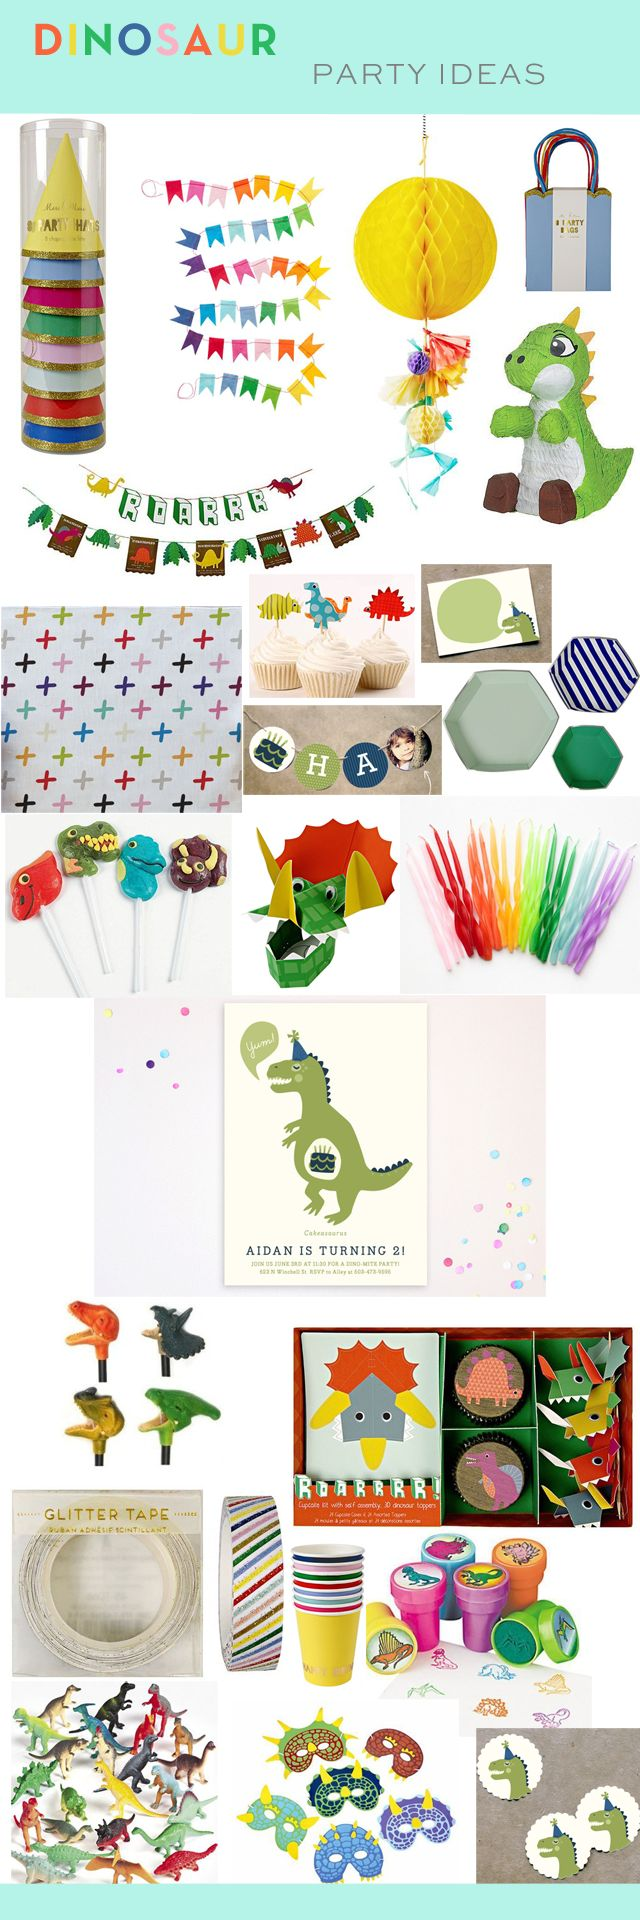 Dinosaur Birthday Party Ideas and Inspiration | ArmelleBlog.com